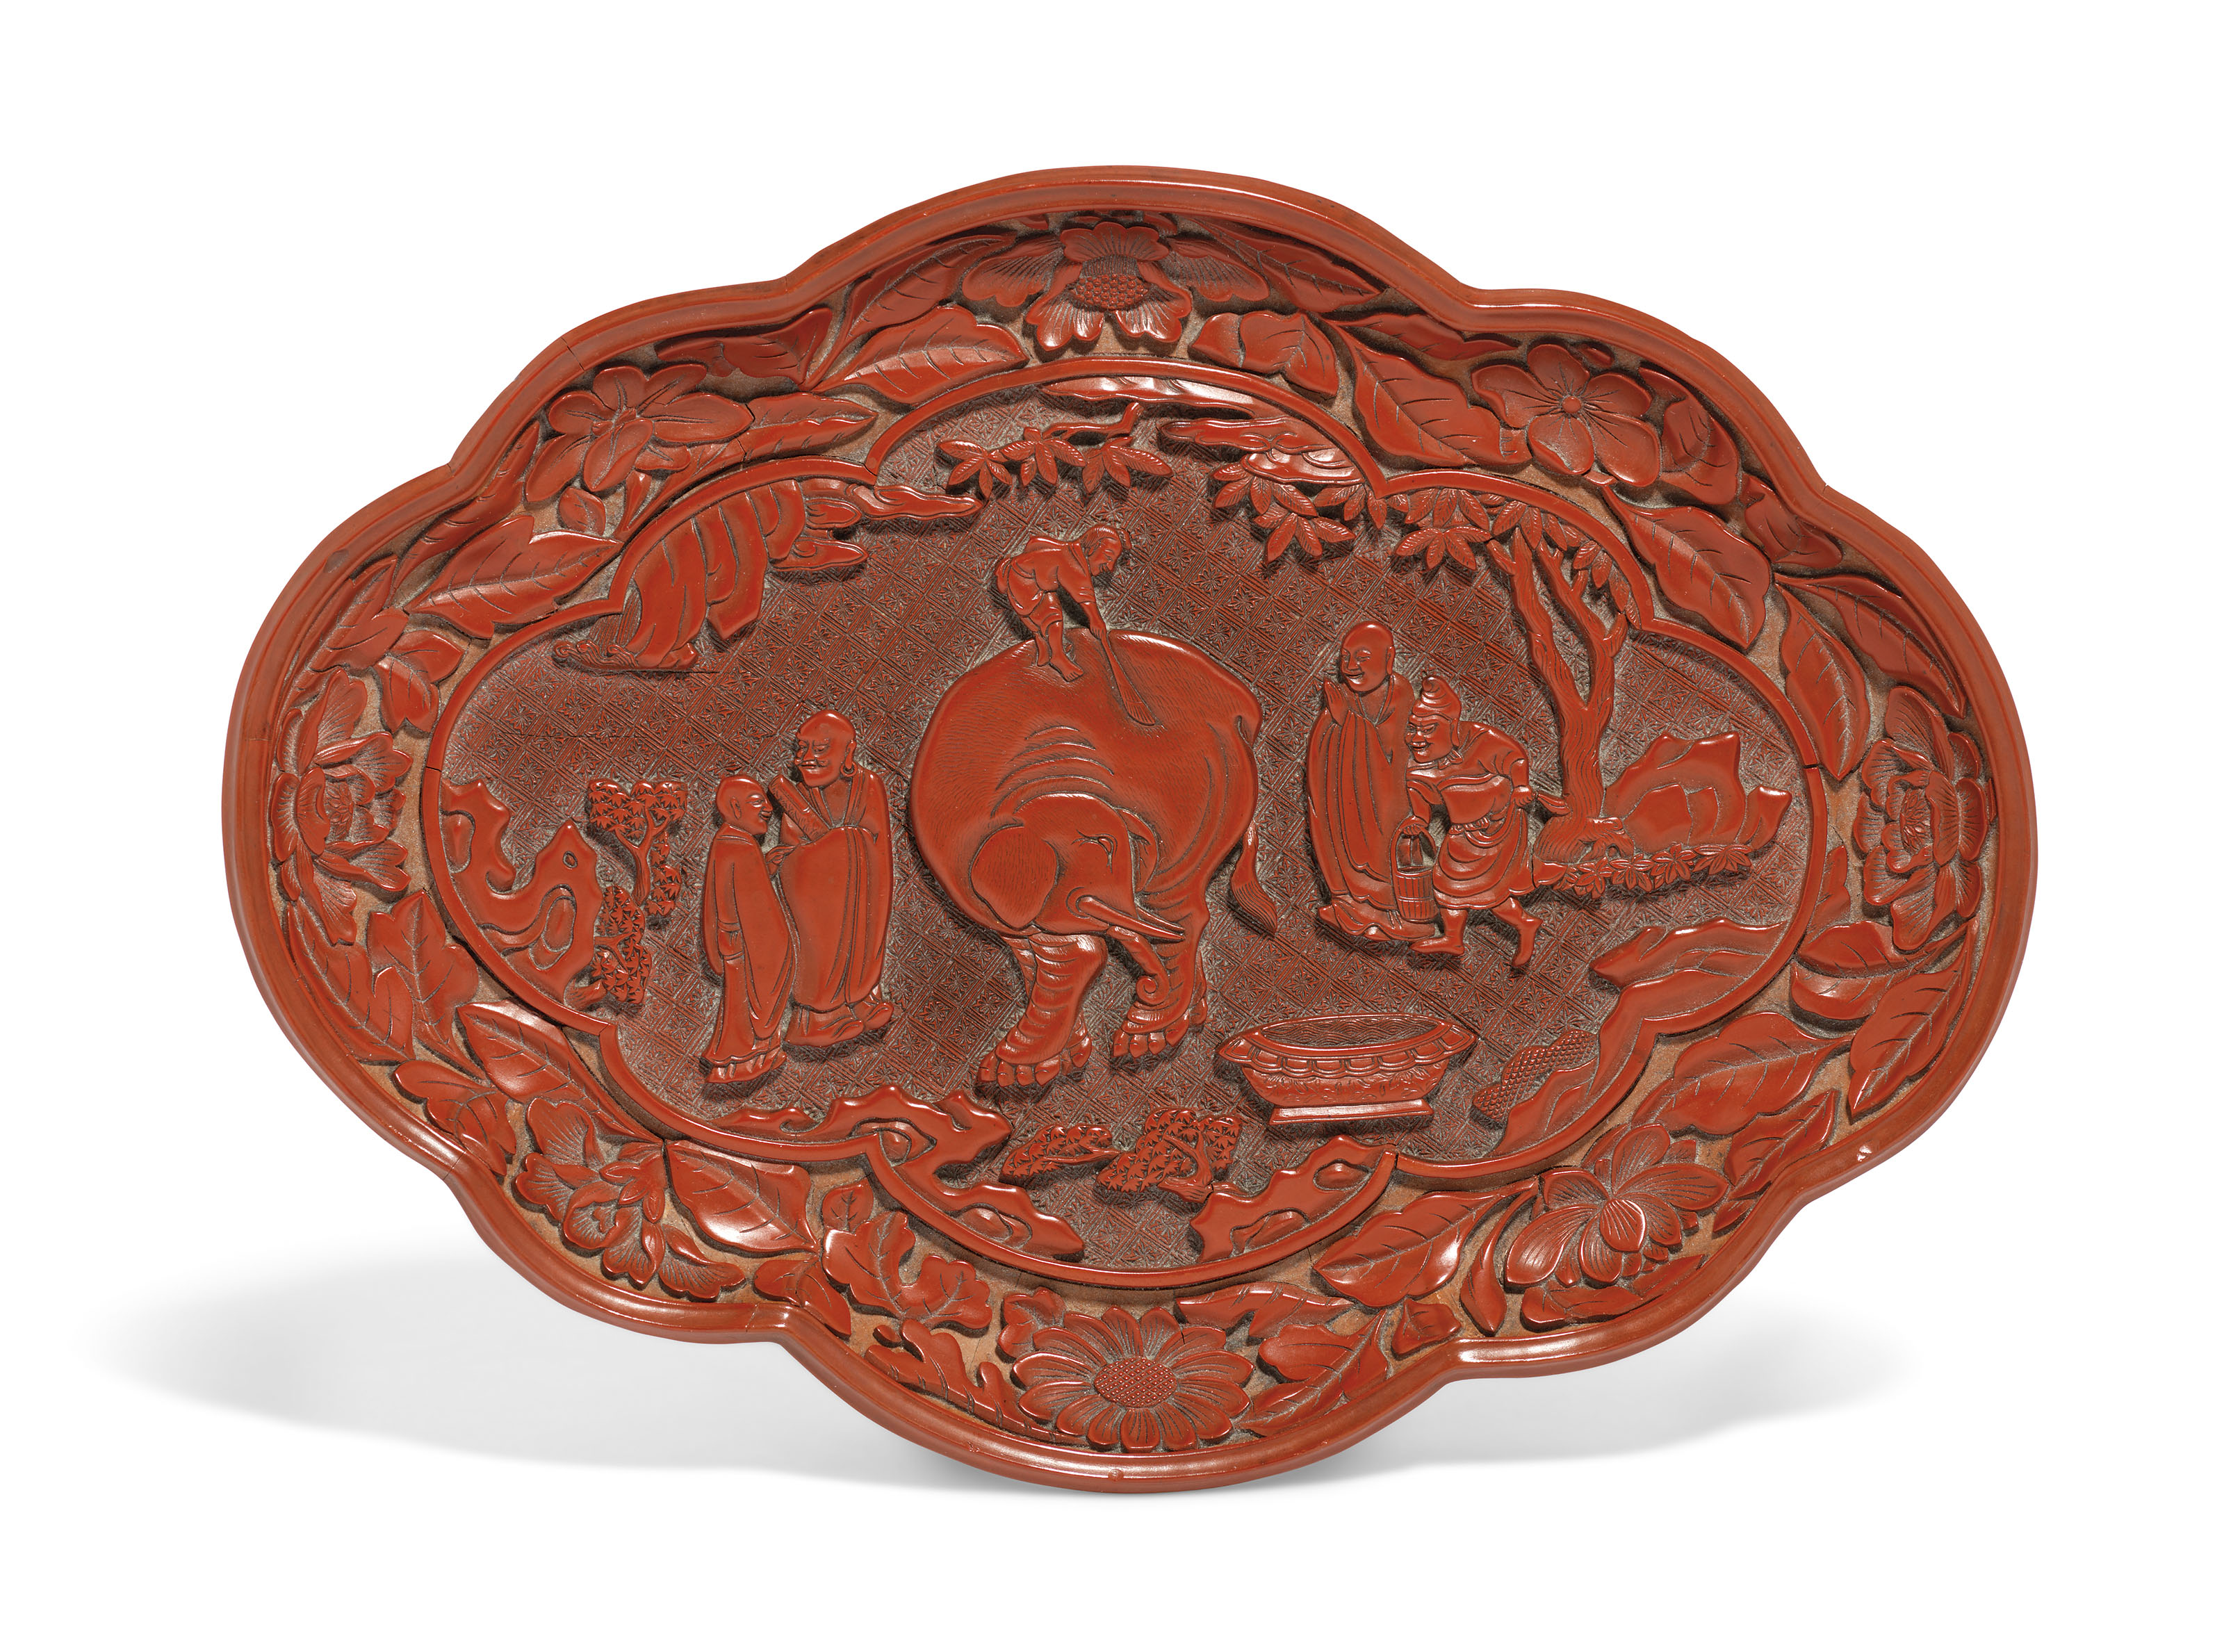 A RARE AND FINELY CARVED LOBED CINNABAR LACQUER 'WASHING THE ELEPHANT' DISH